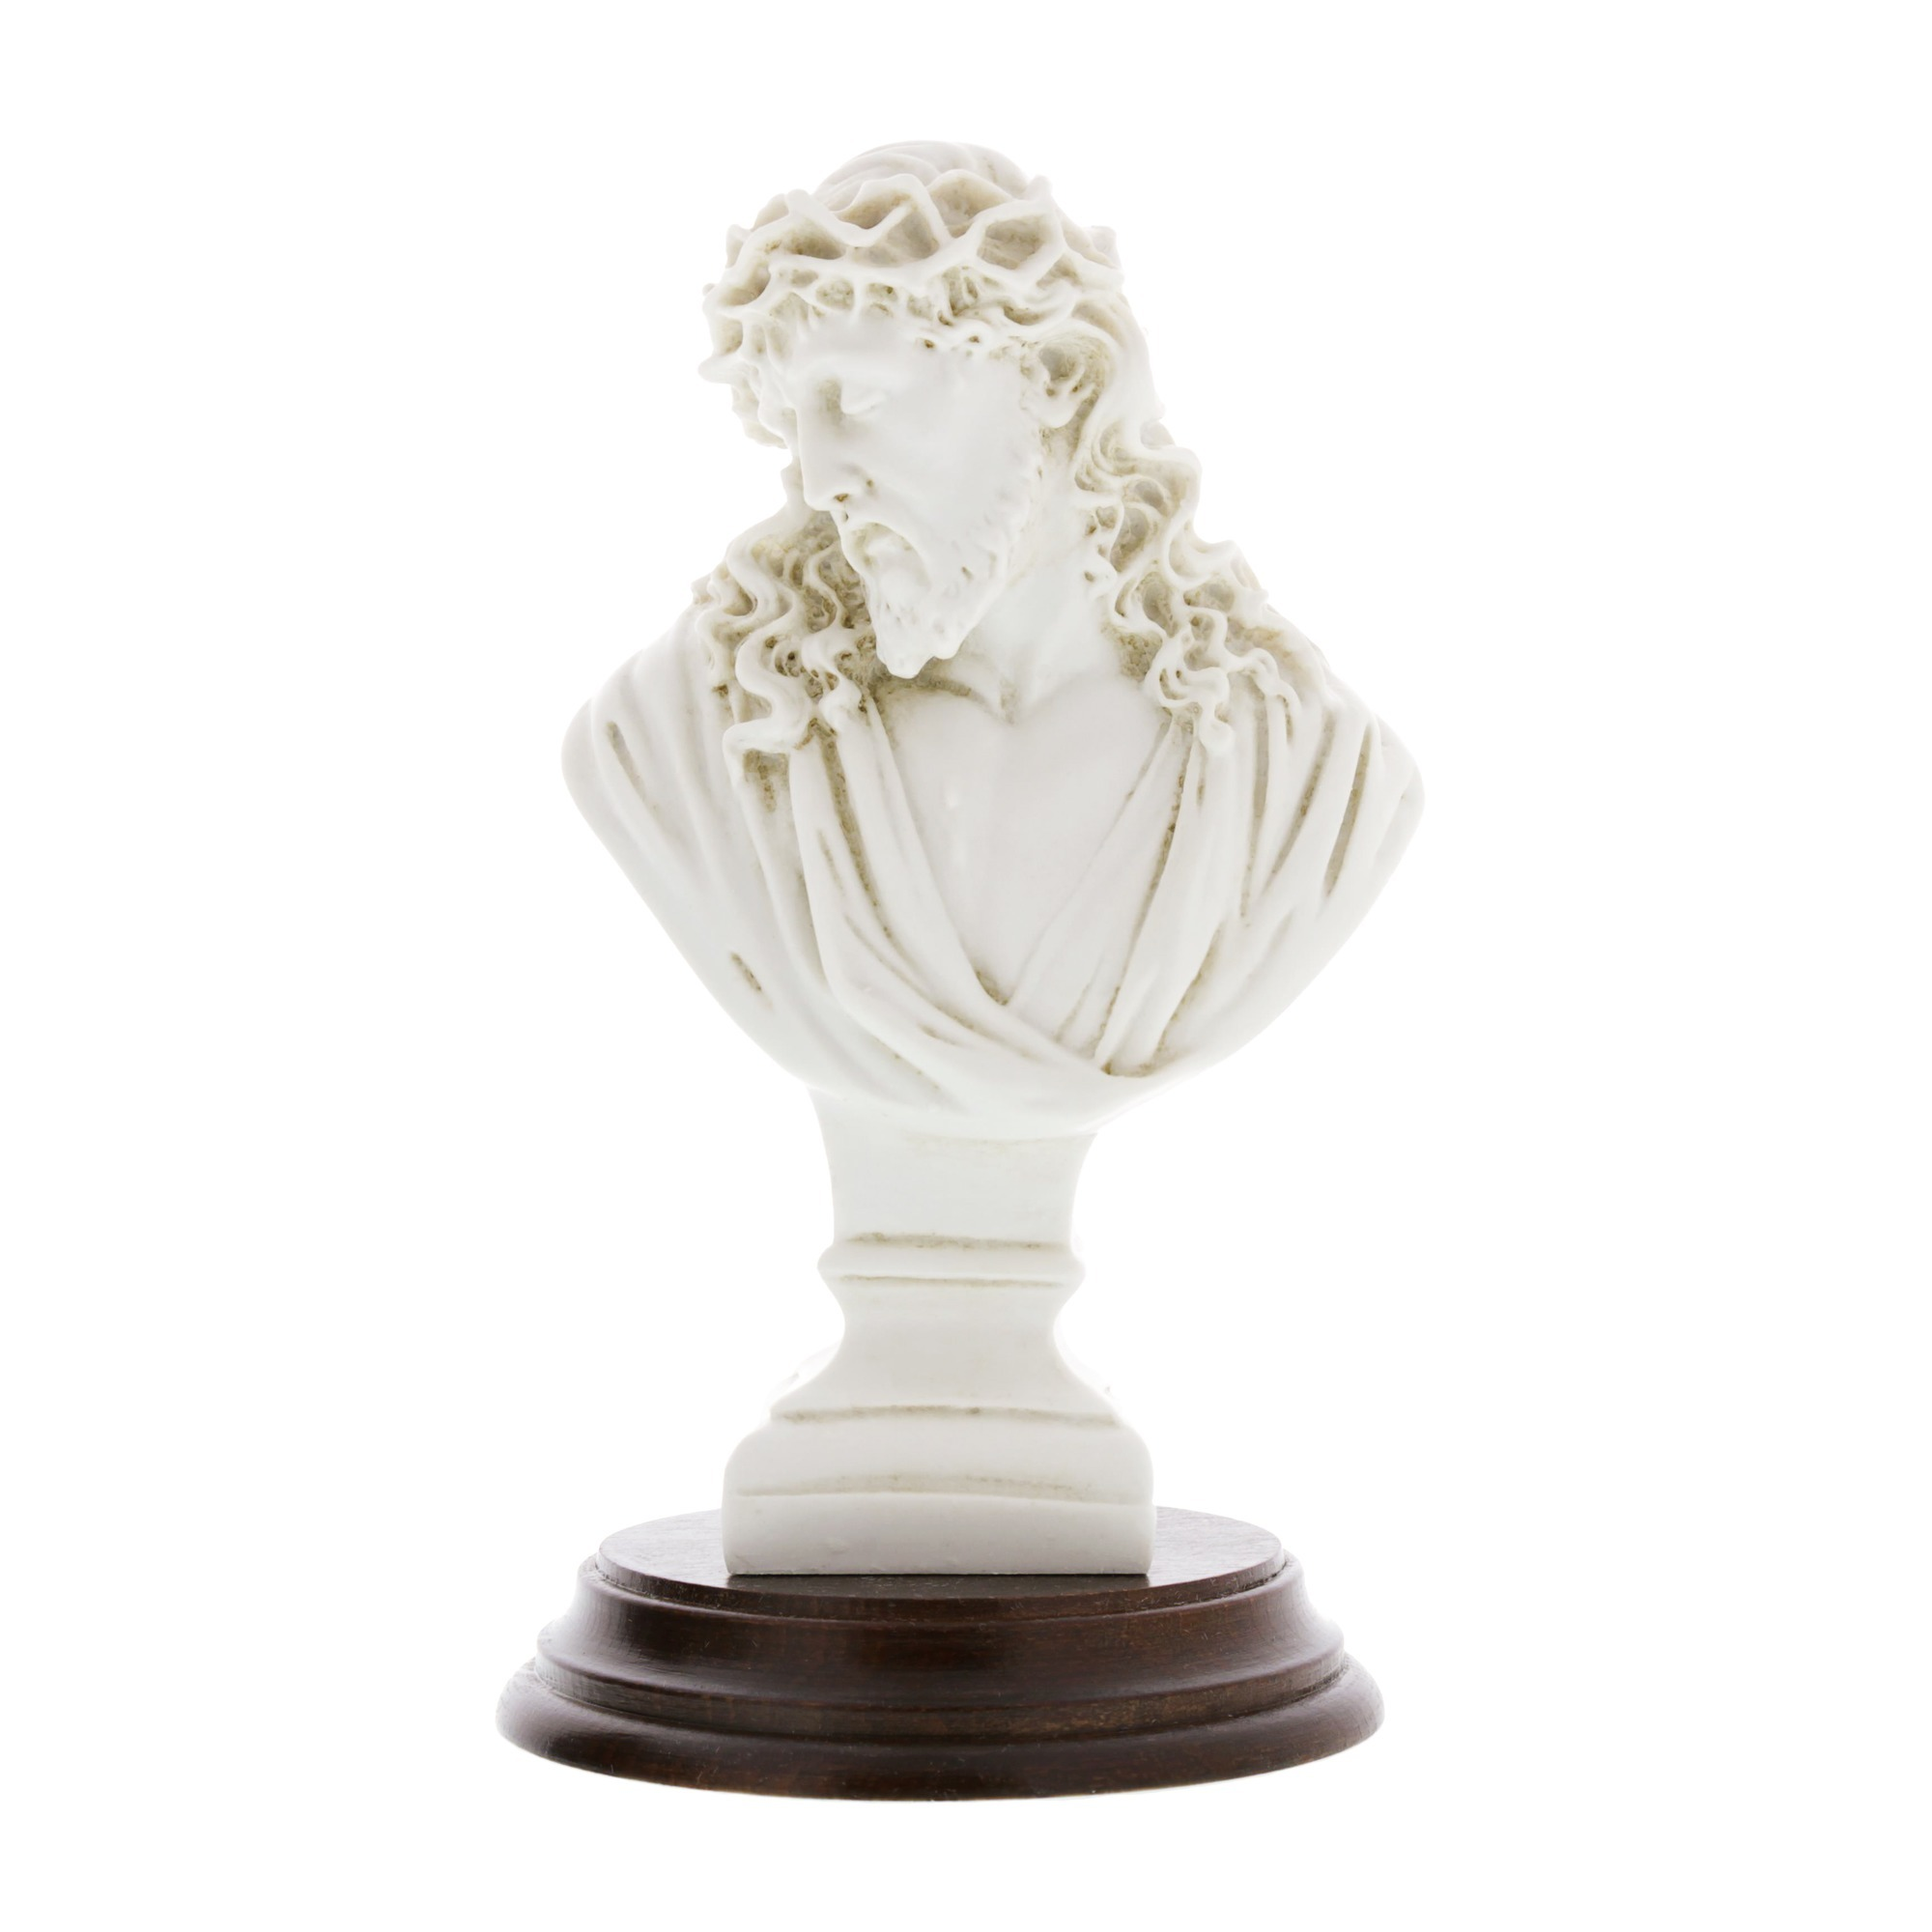 extremely inspiration new home gifts. 2027596  Catholic Gift Ideas Religious Gifts Home Decor The